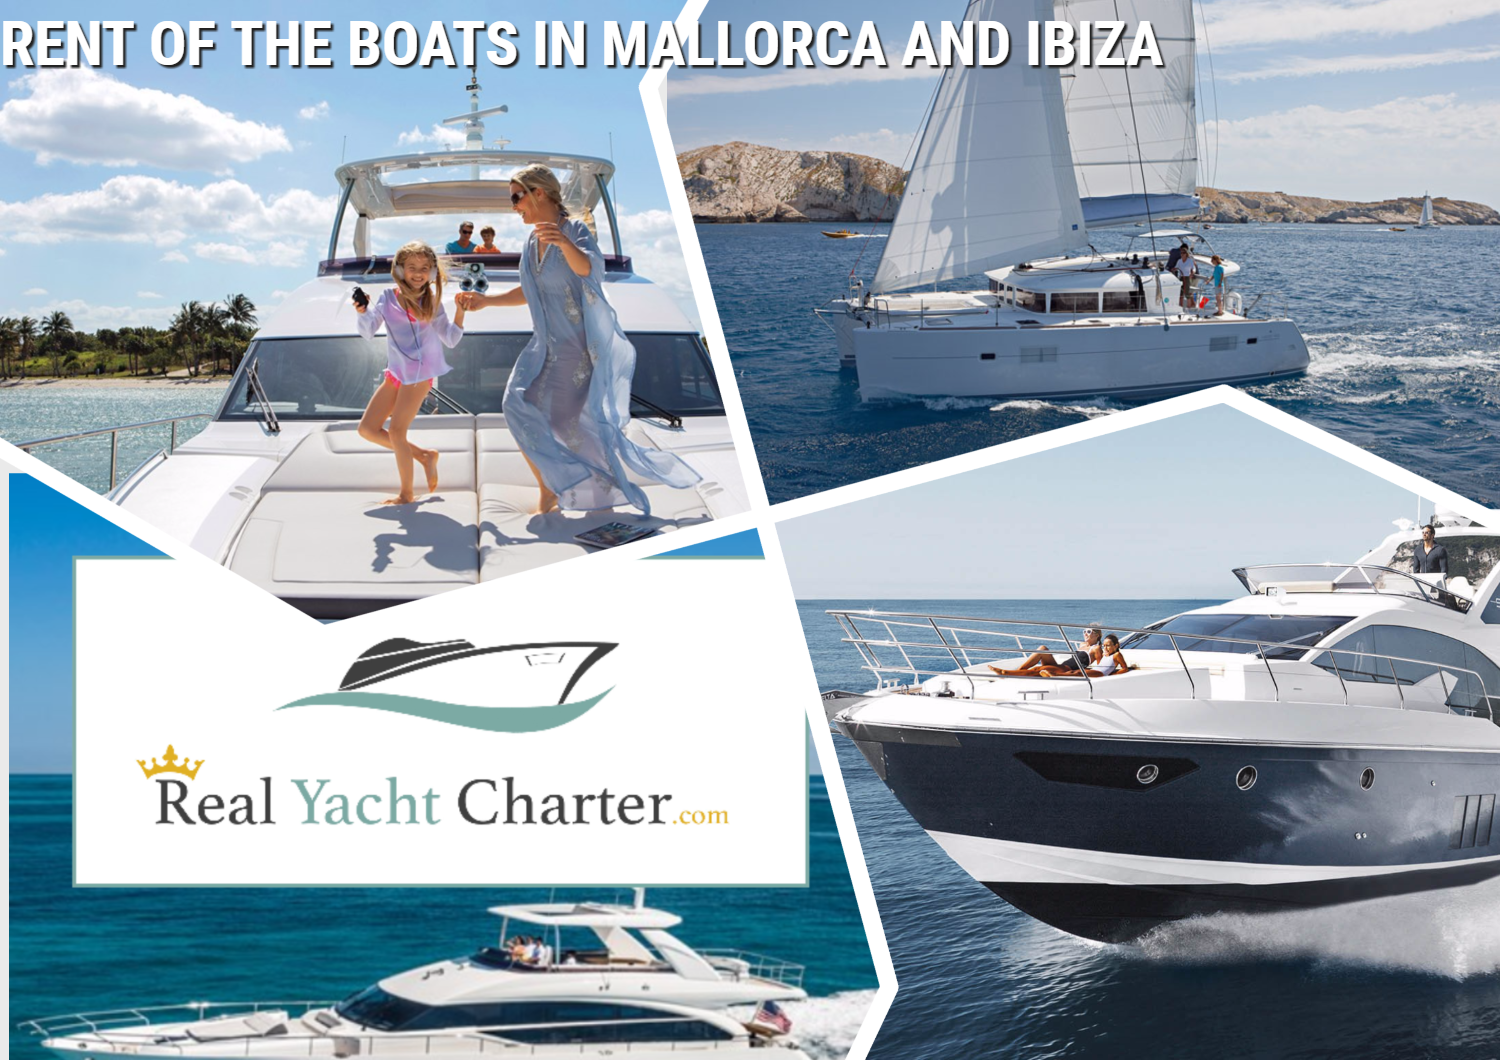 Day Boat Charter in Mallorca